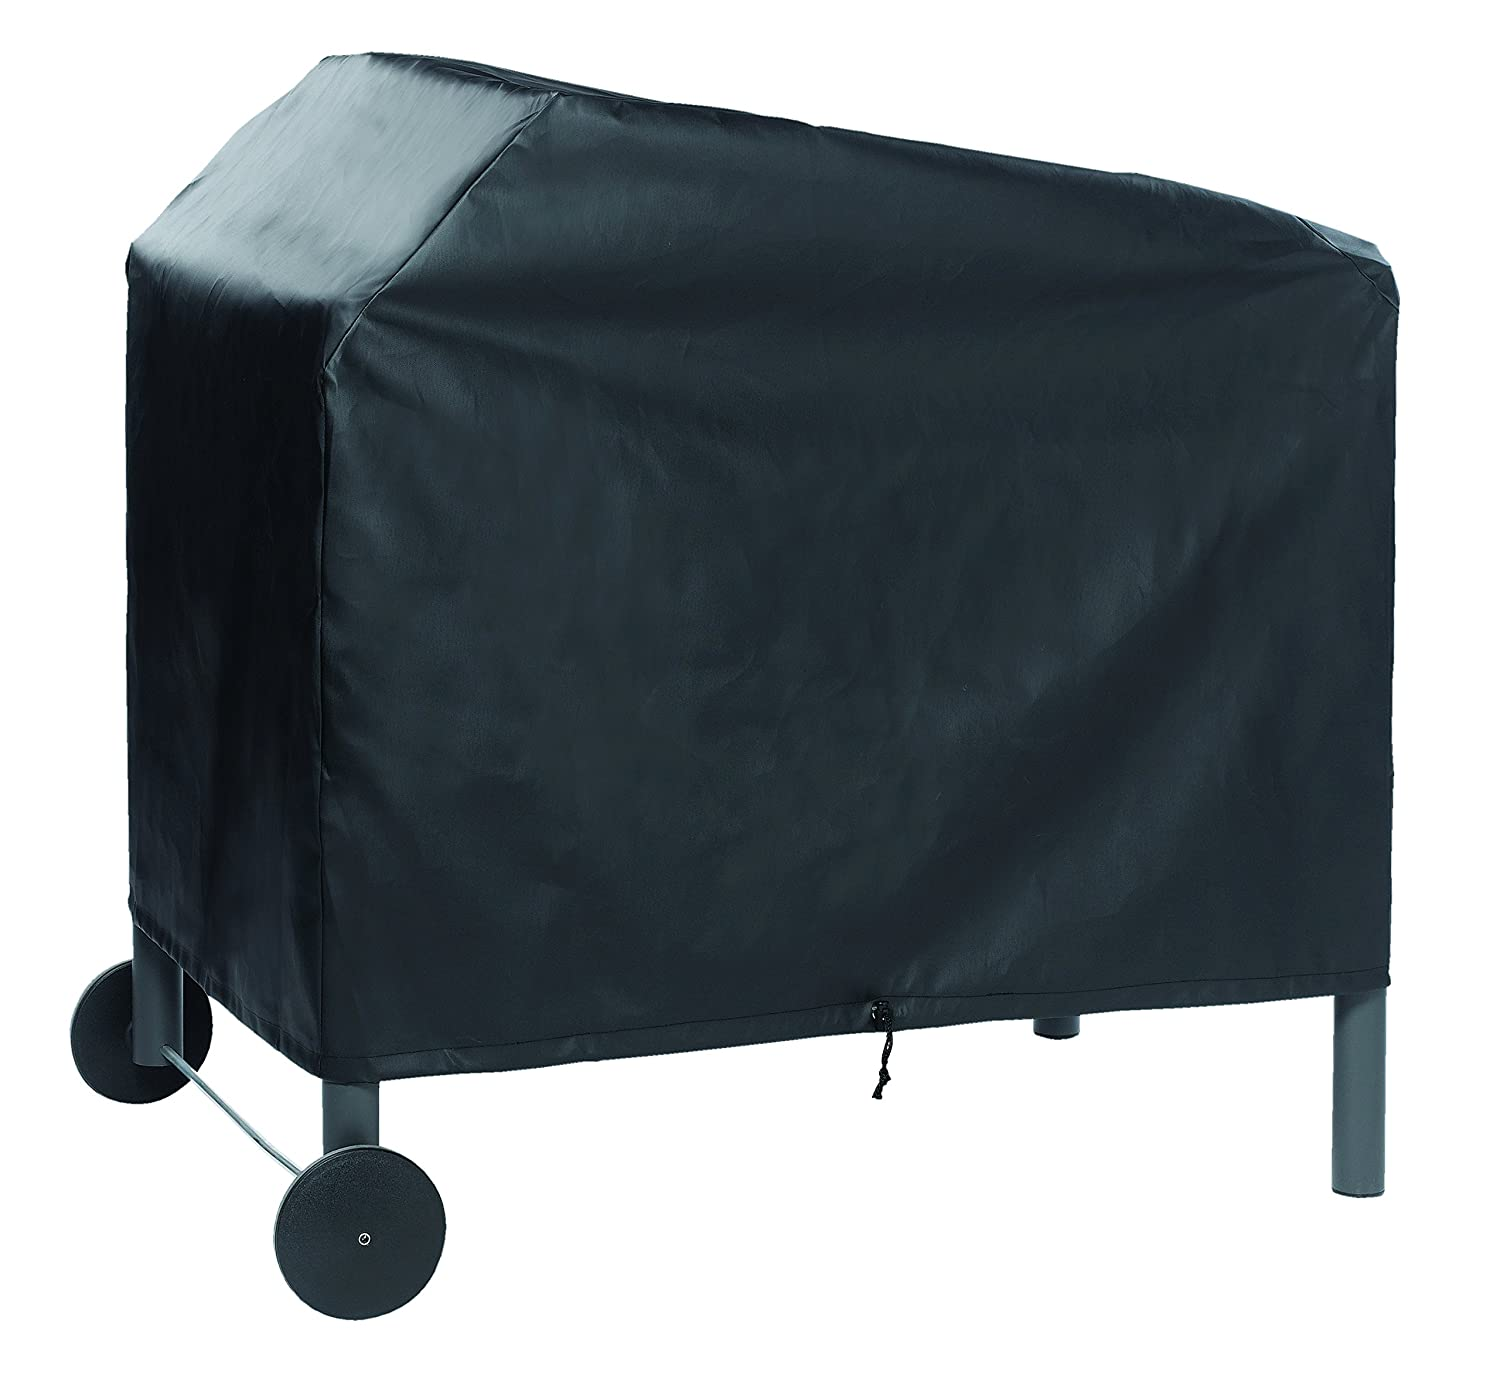 Dancook Barbecue Cover 5000 (product no. 130 138) - designed to custom fit 5000 Barbecue grill, Black.